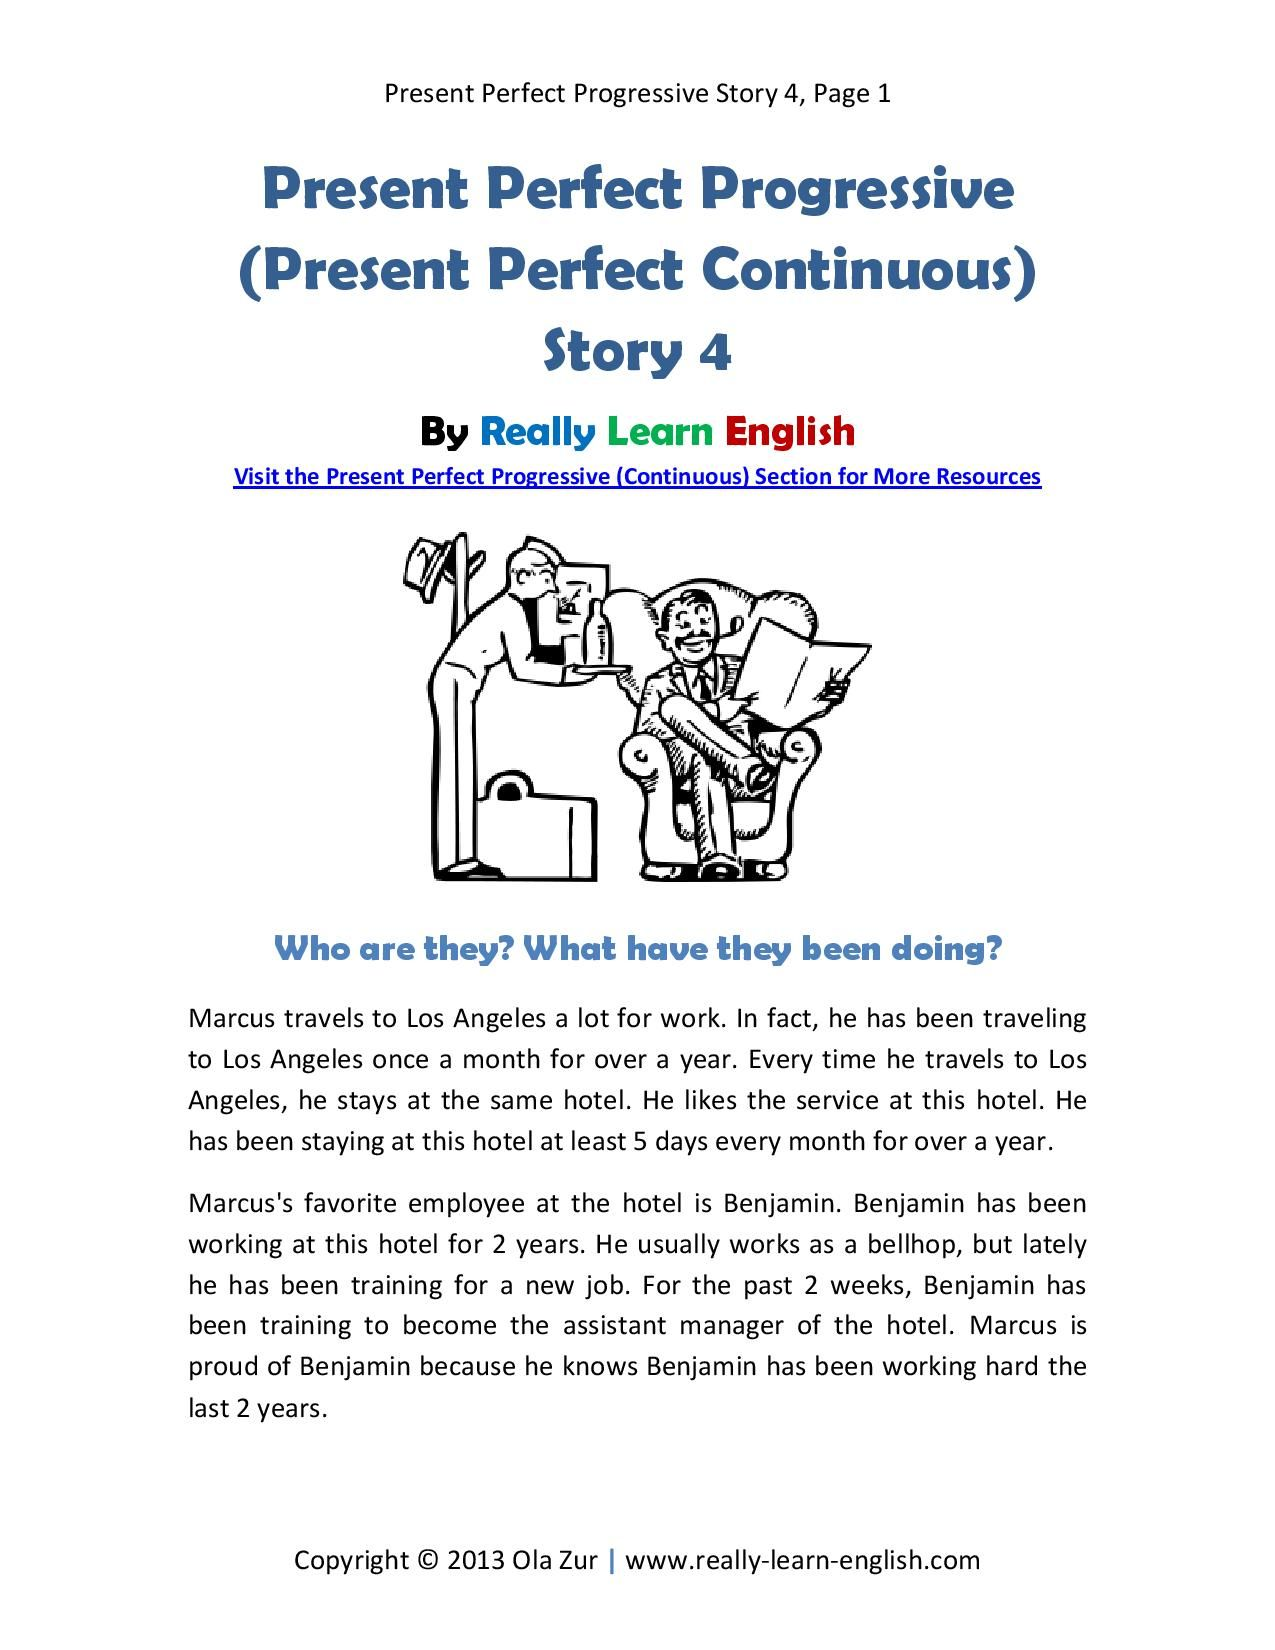 Look Printable Story And Worksheet To Practice The English Present Perfect Progressive